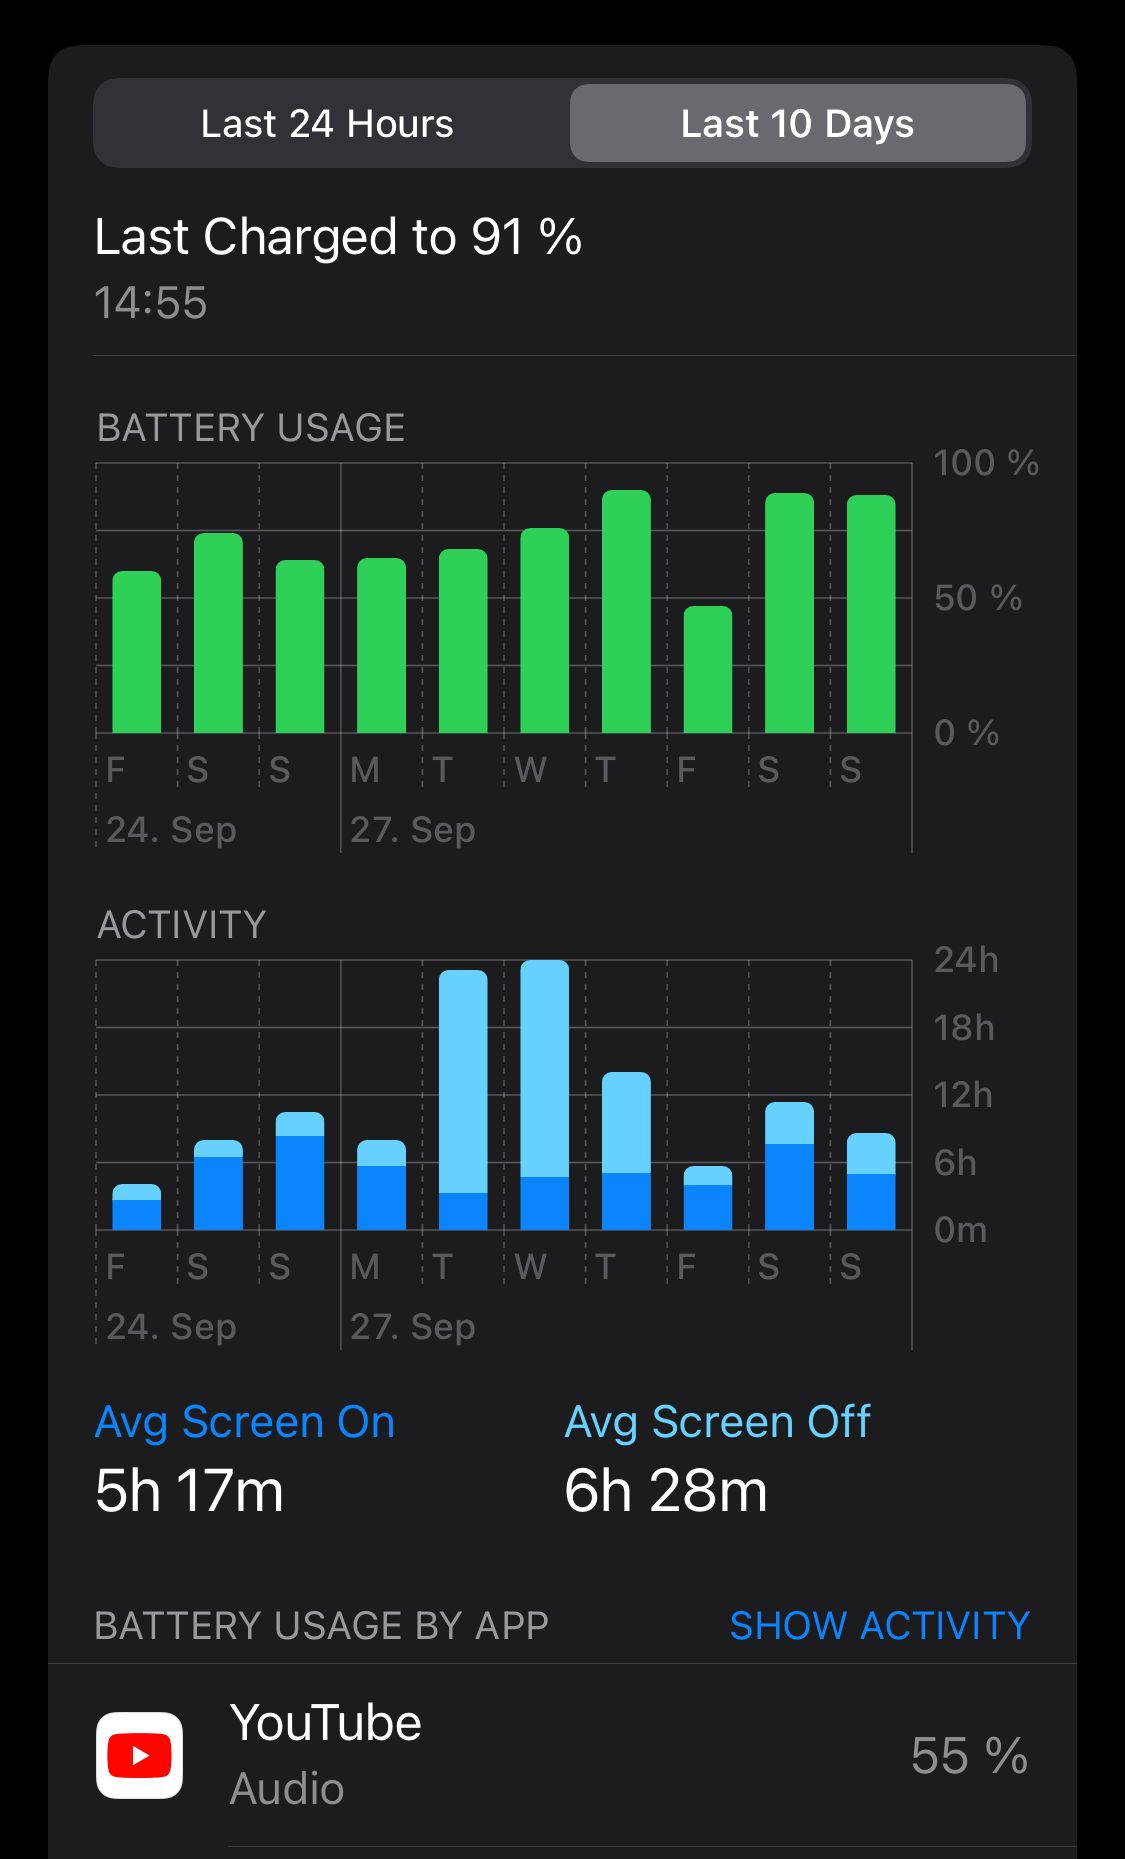 Screenshot of my battery usage, in which it states that the average screen on time for the last 10 days is 5 hours 17 minutes. Also 55% of the battery is used by YouTube.